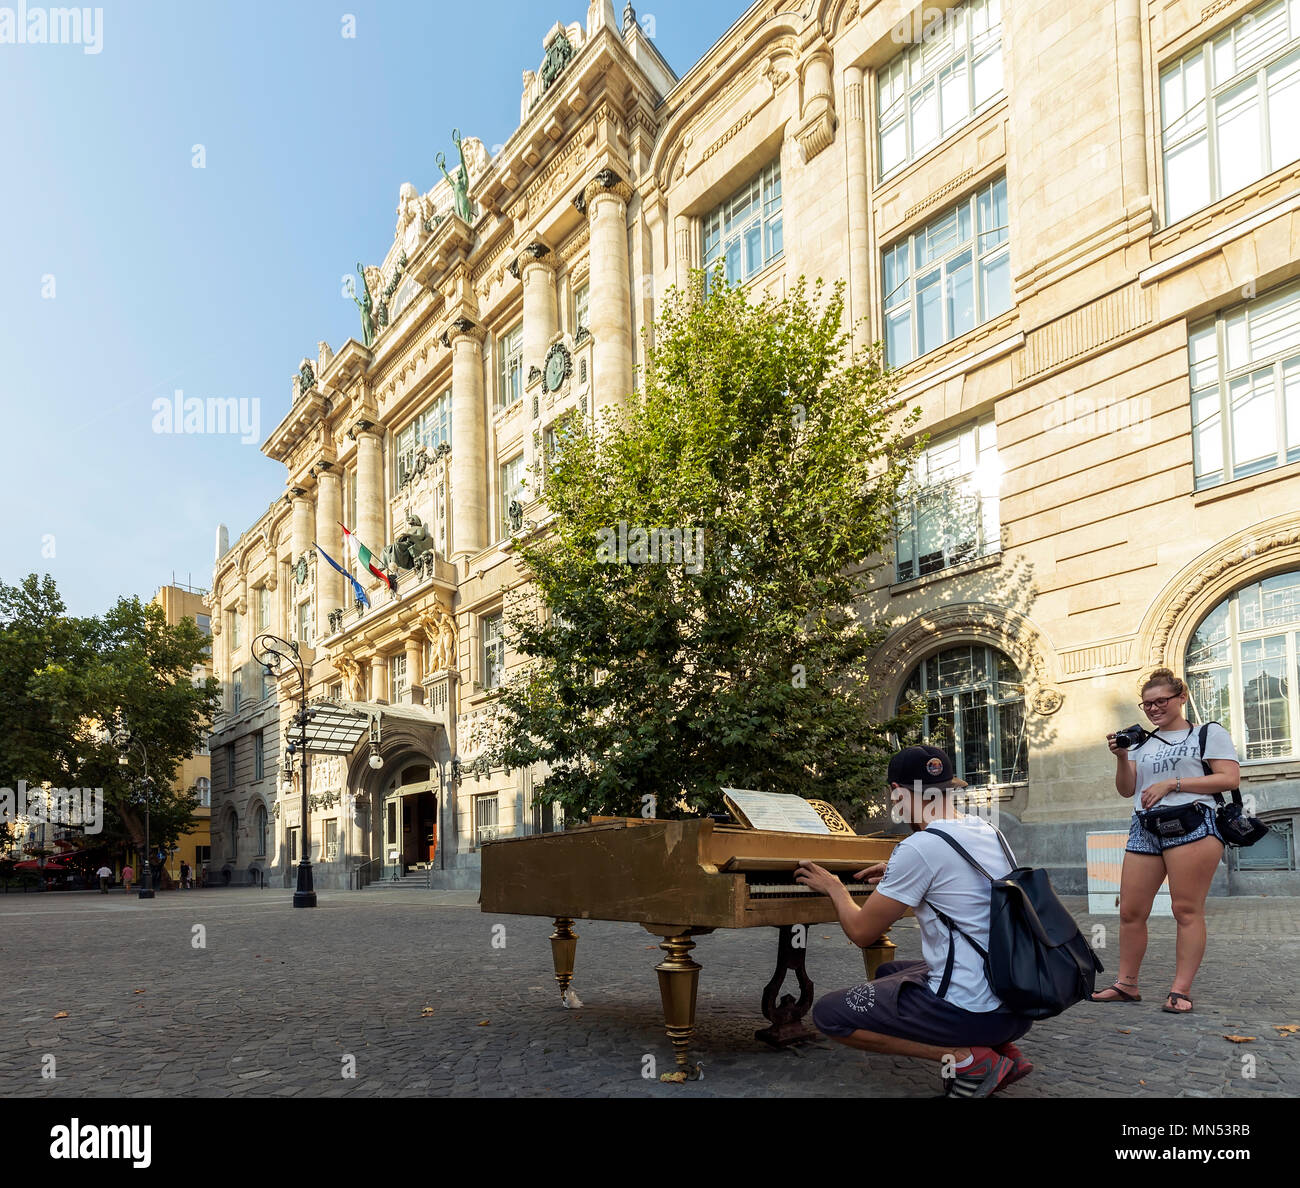 A working old gilded piano set up in joy of passers-by in front of the Liszt Ferenc Academy of Music's entrance. - Stock Image